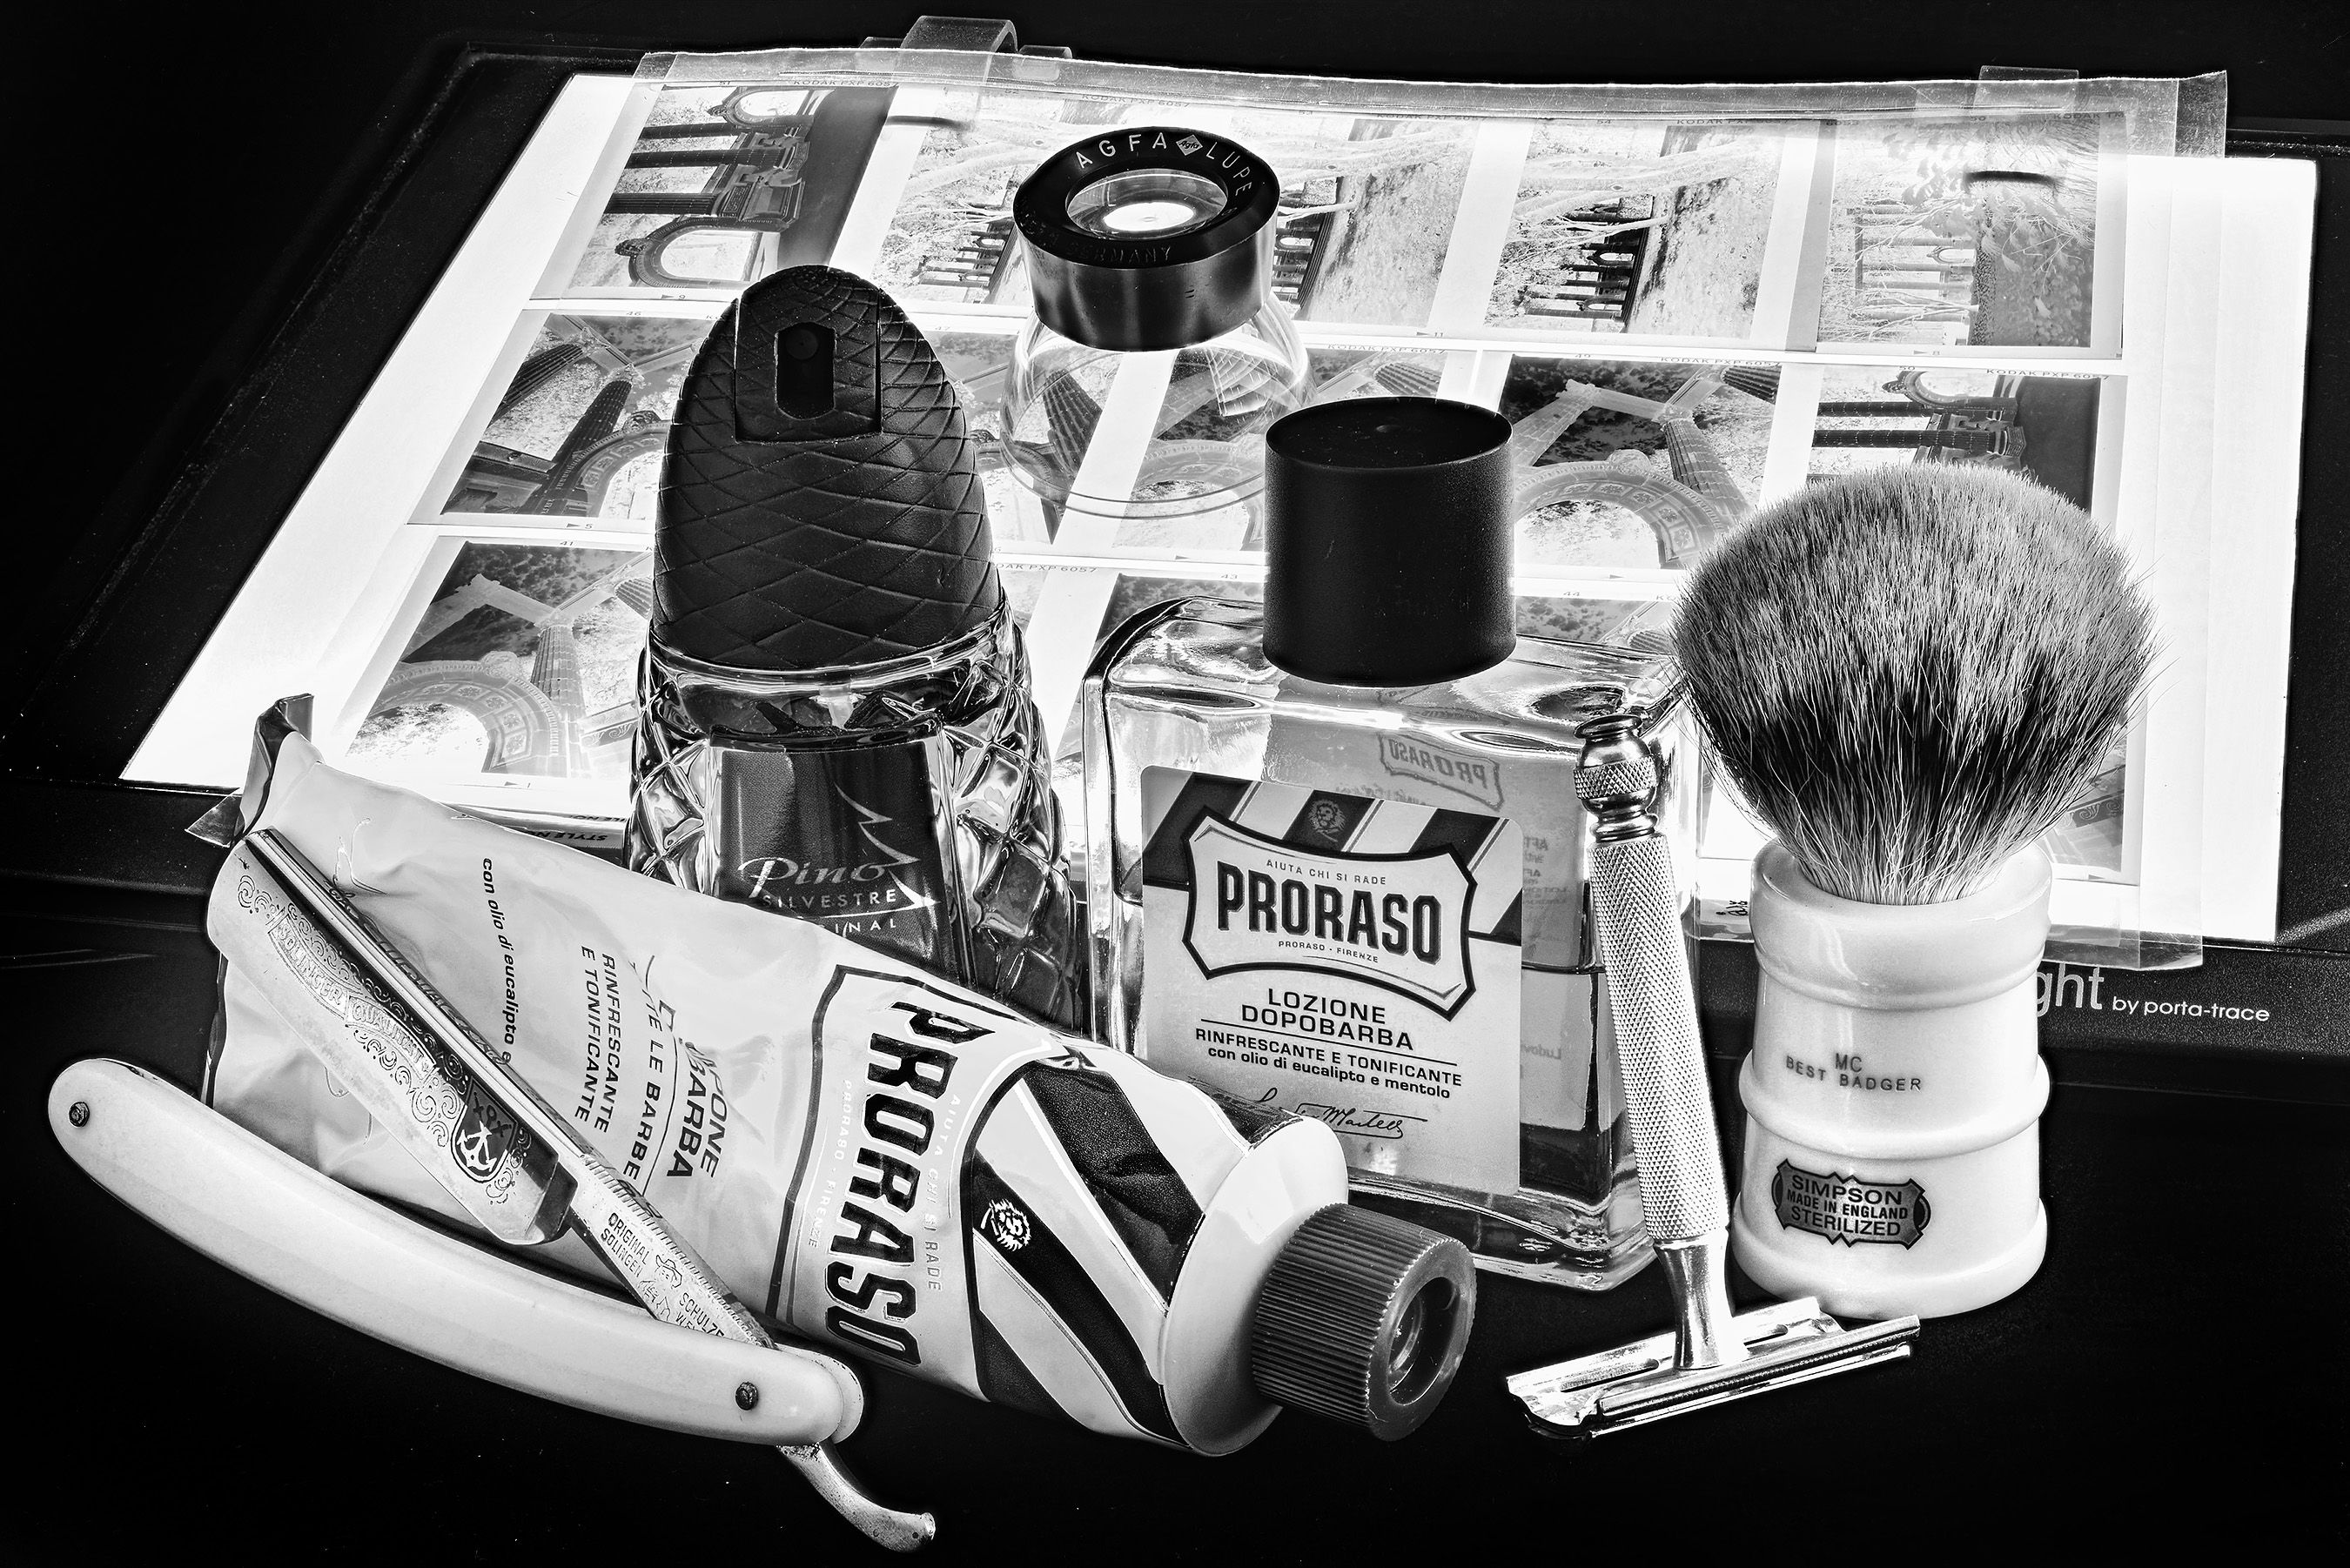 Proraso green shave cream and aftershave, Simpson